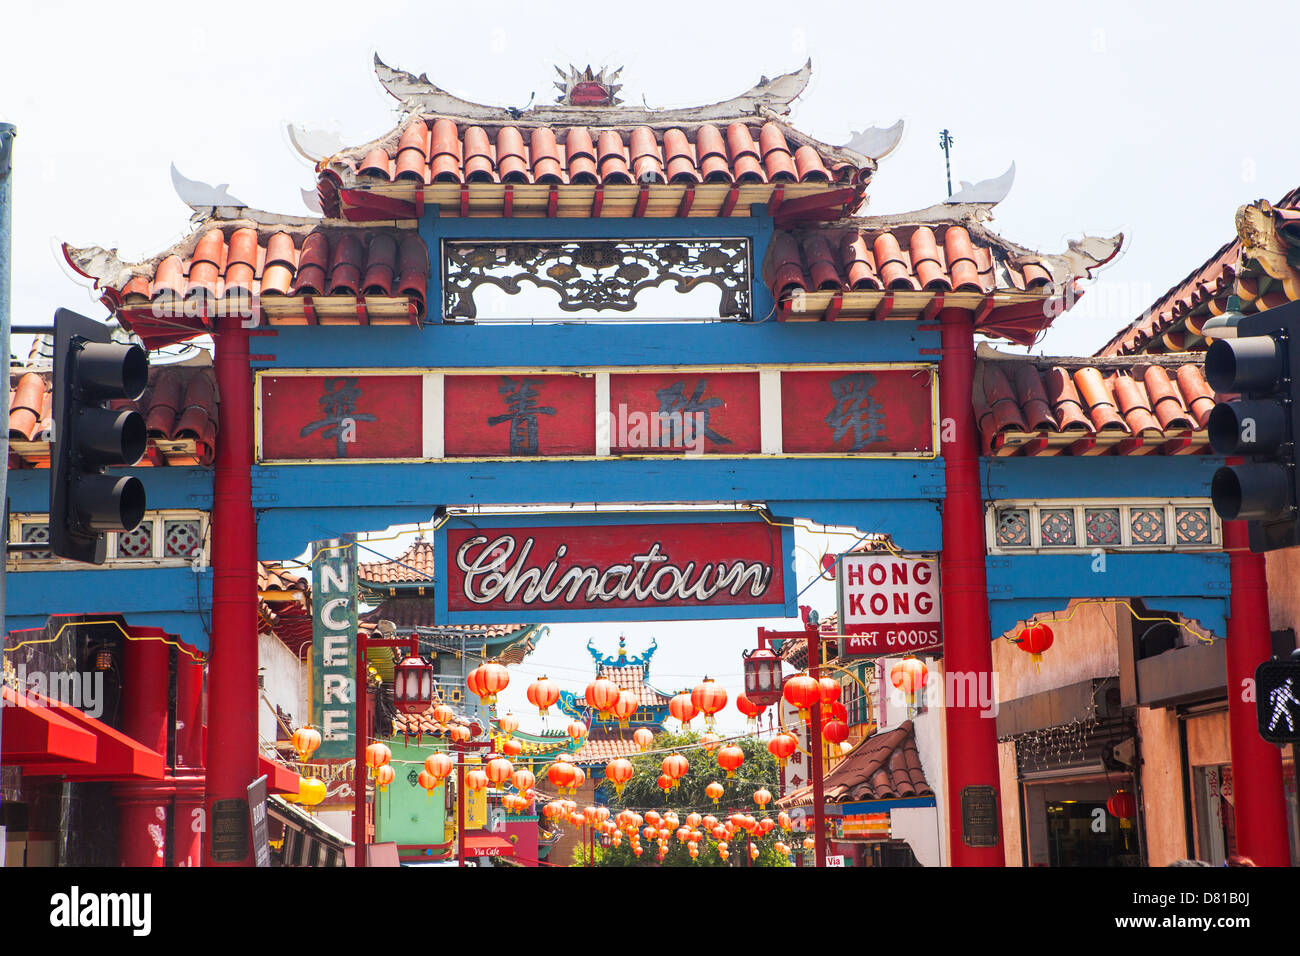 entrance sign to chinatown los angeles california stock. Black Bedroom Furniture Sets. Home Design Ideas